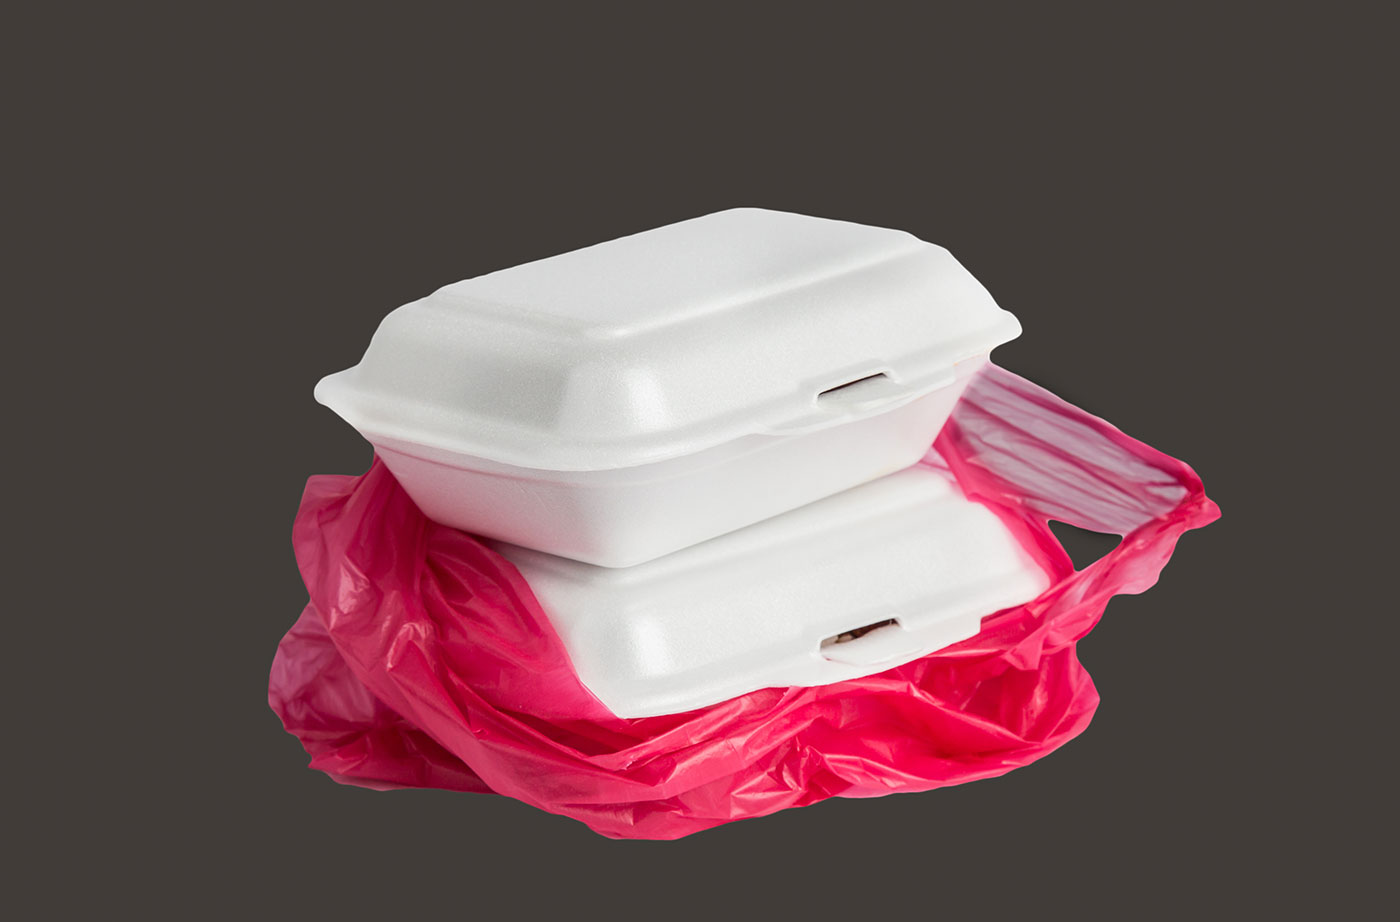 The Natural Resources Council of Maine Supports Bag and Polystyrene Bans